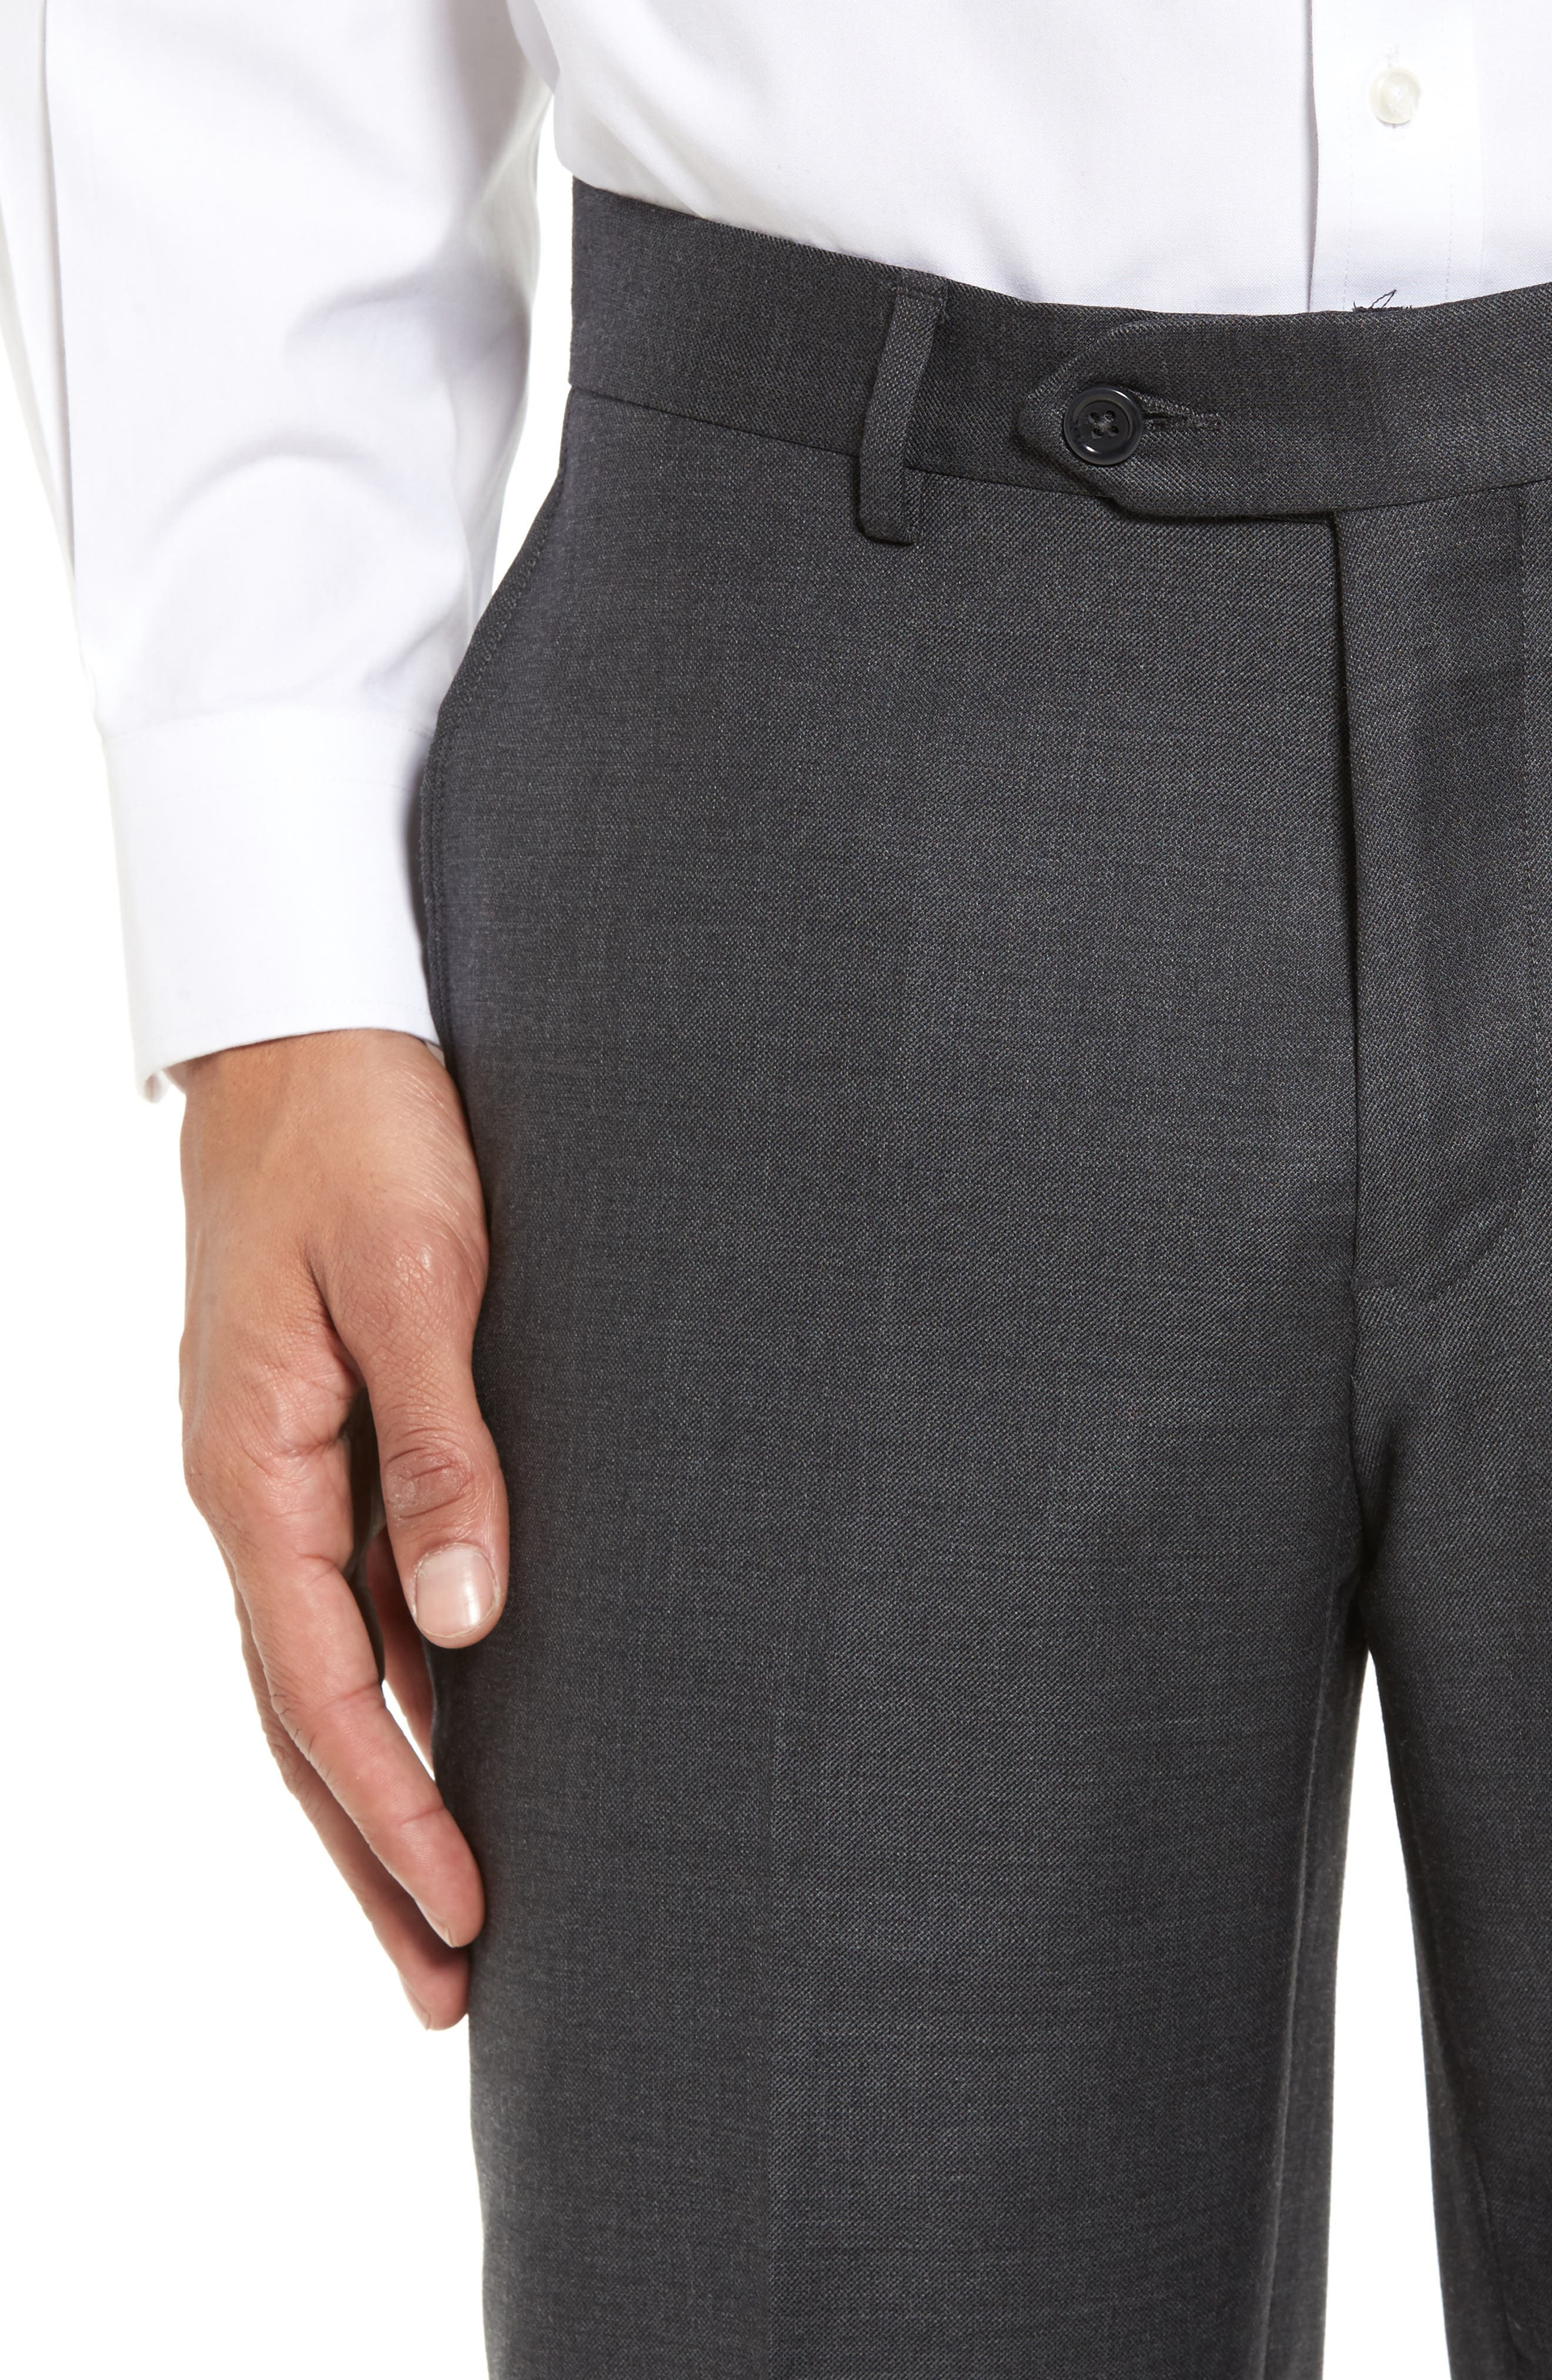 Flat Front Sharkskin Wool Trousers,                             Alternate thumbnail 4, color,                             Charcoal